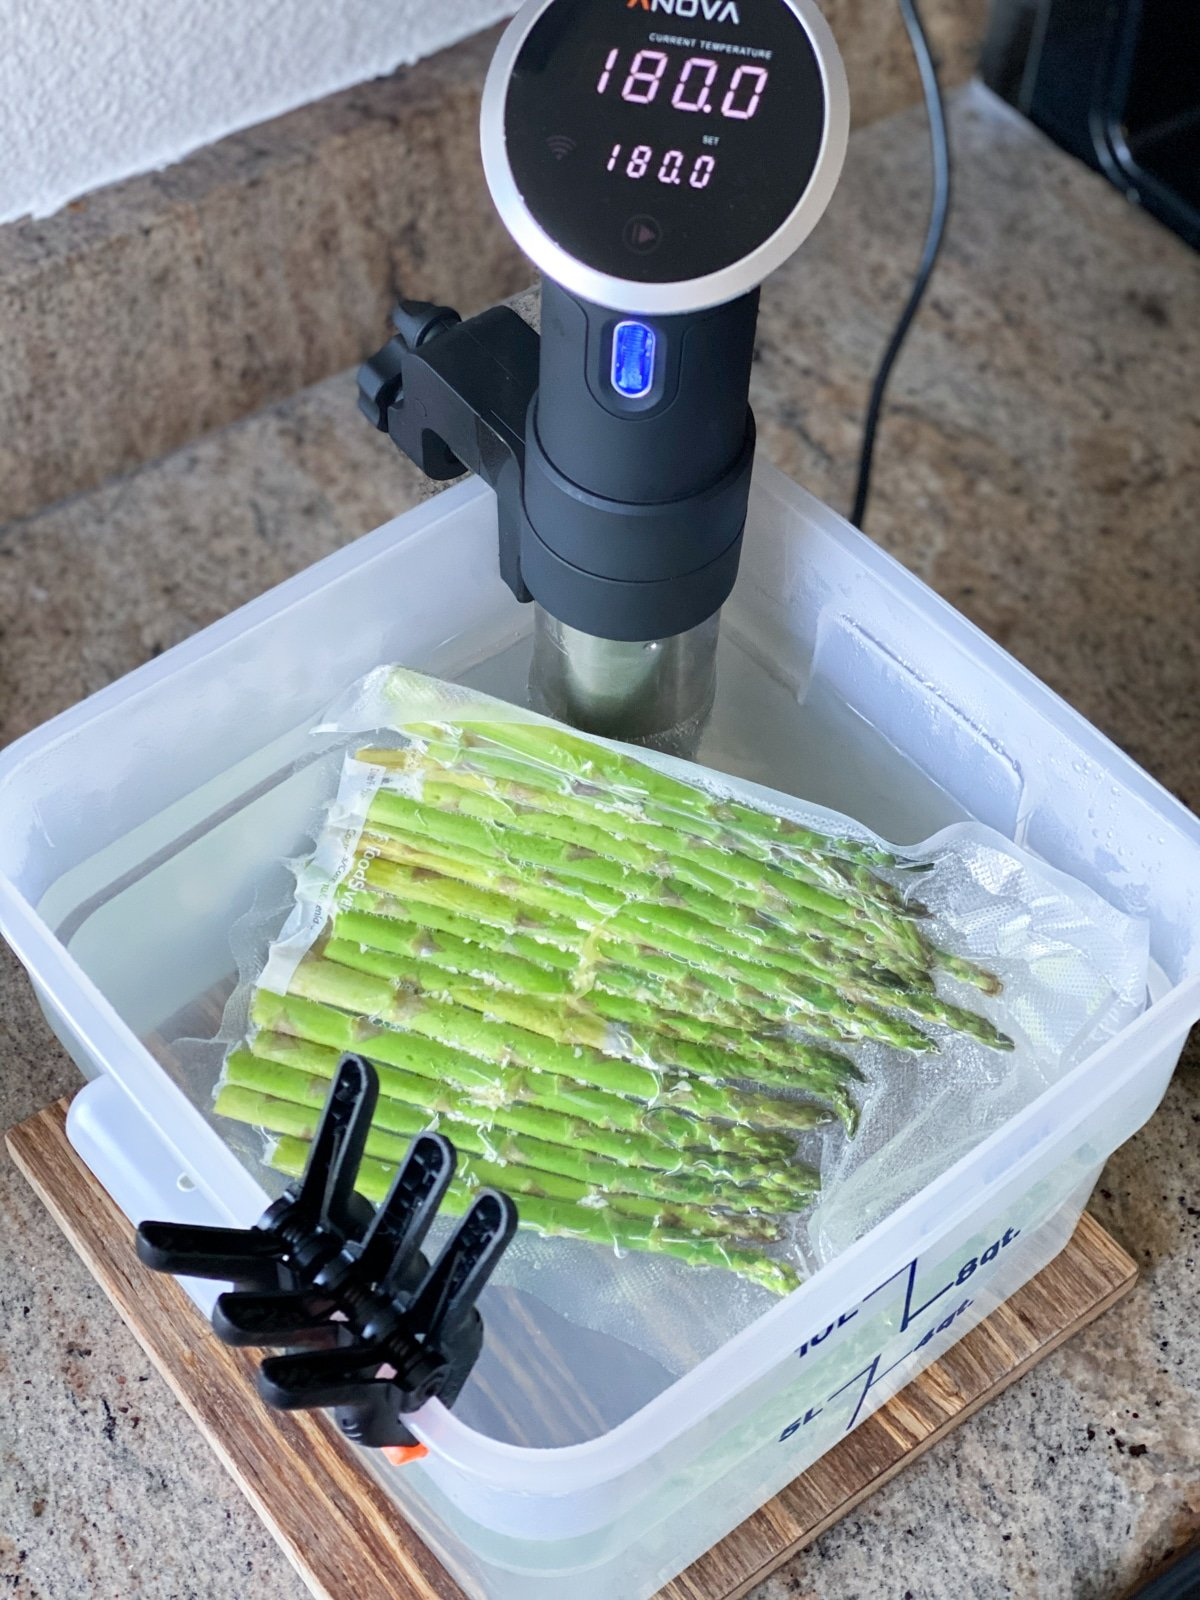 anova and sous vide asparagus temperature at 180 F